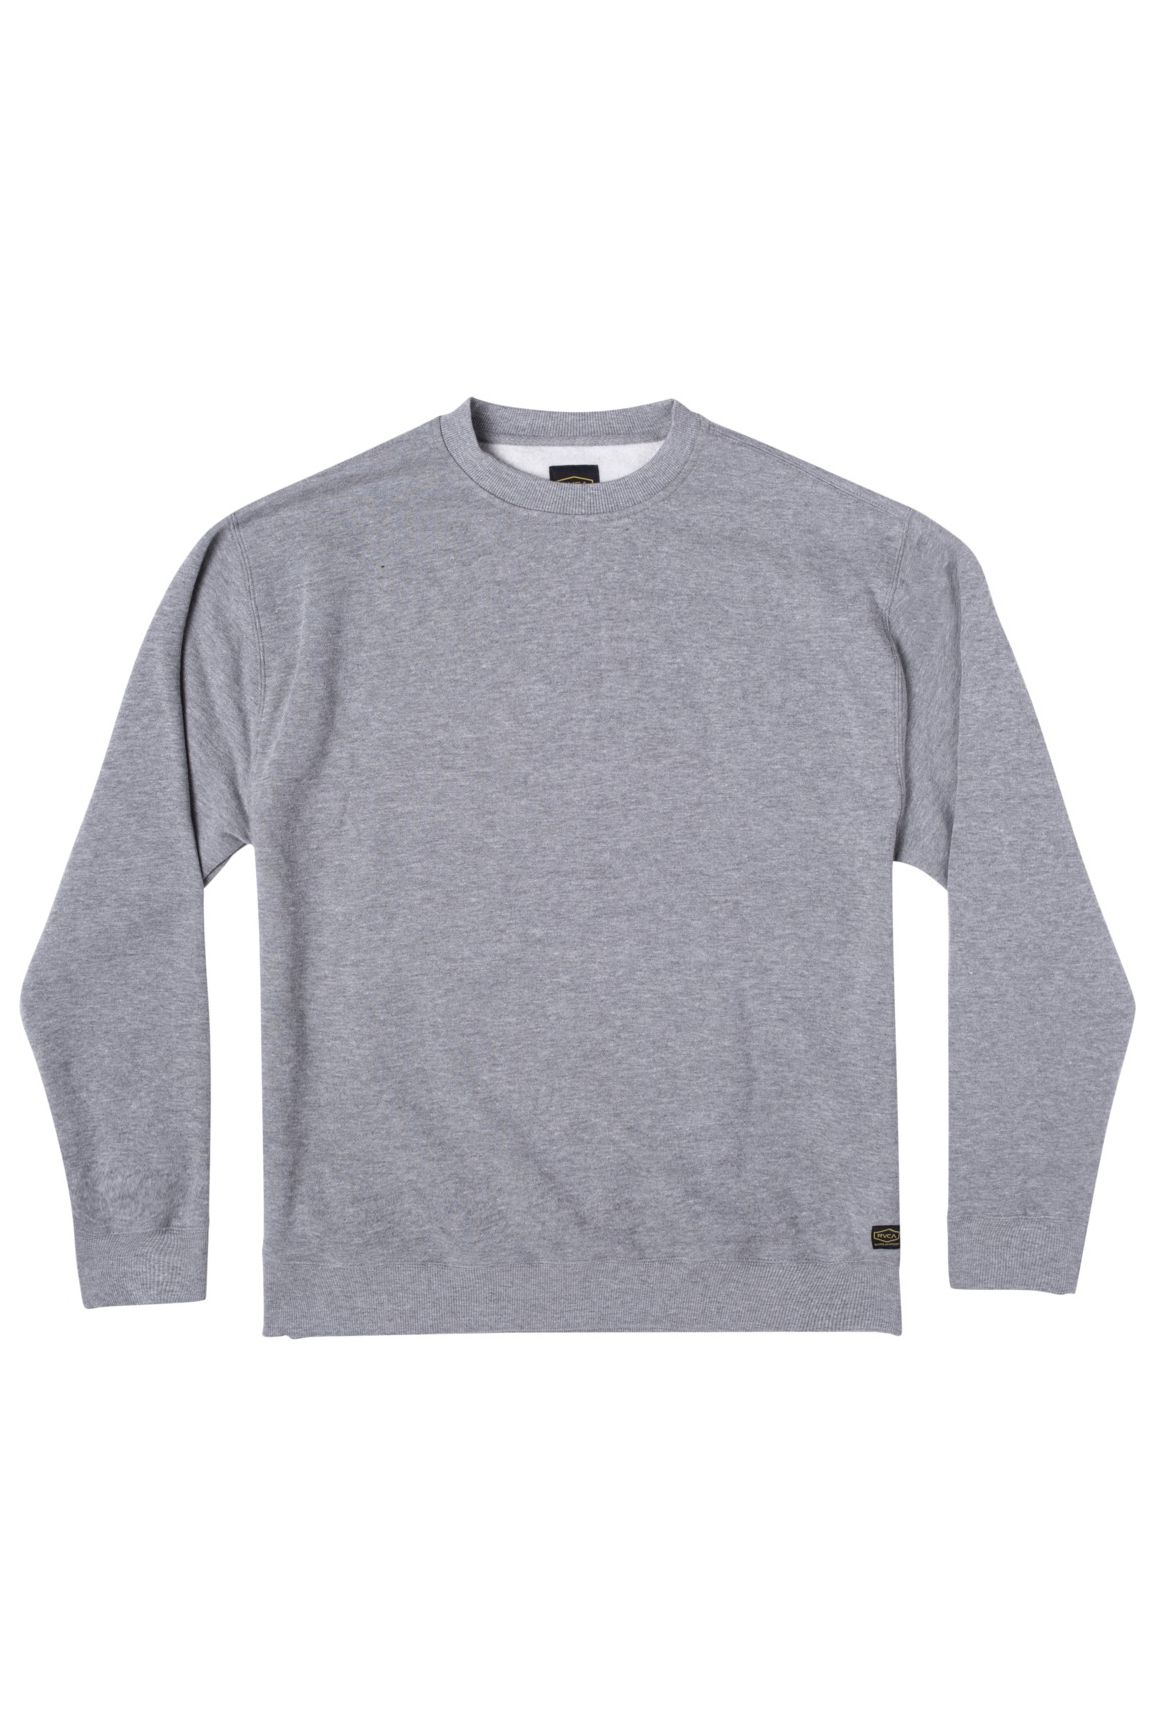 RVCA Crew Sweat DAY SHIFT RECESSION COLLECTION Athletic Heather